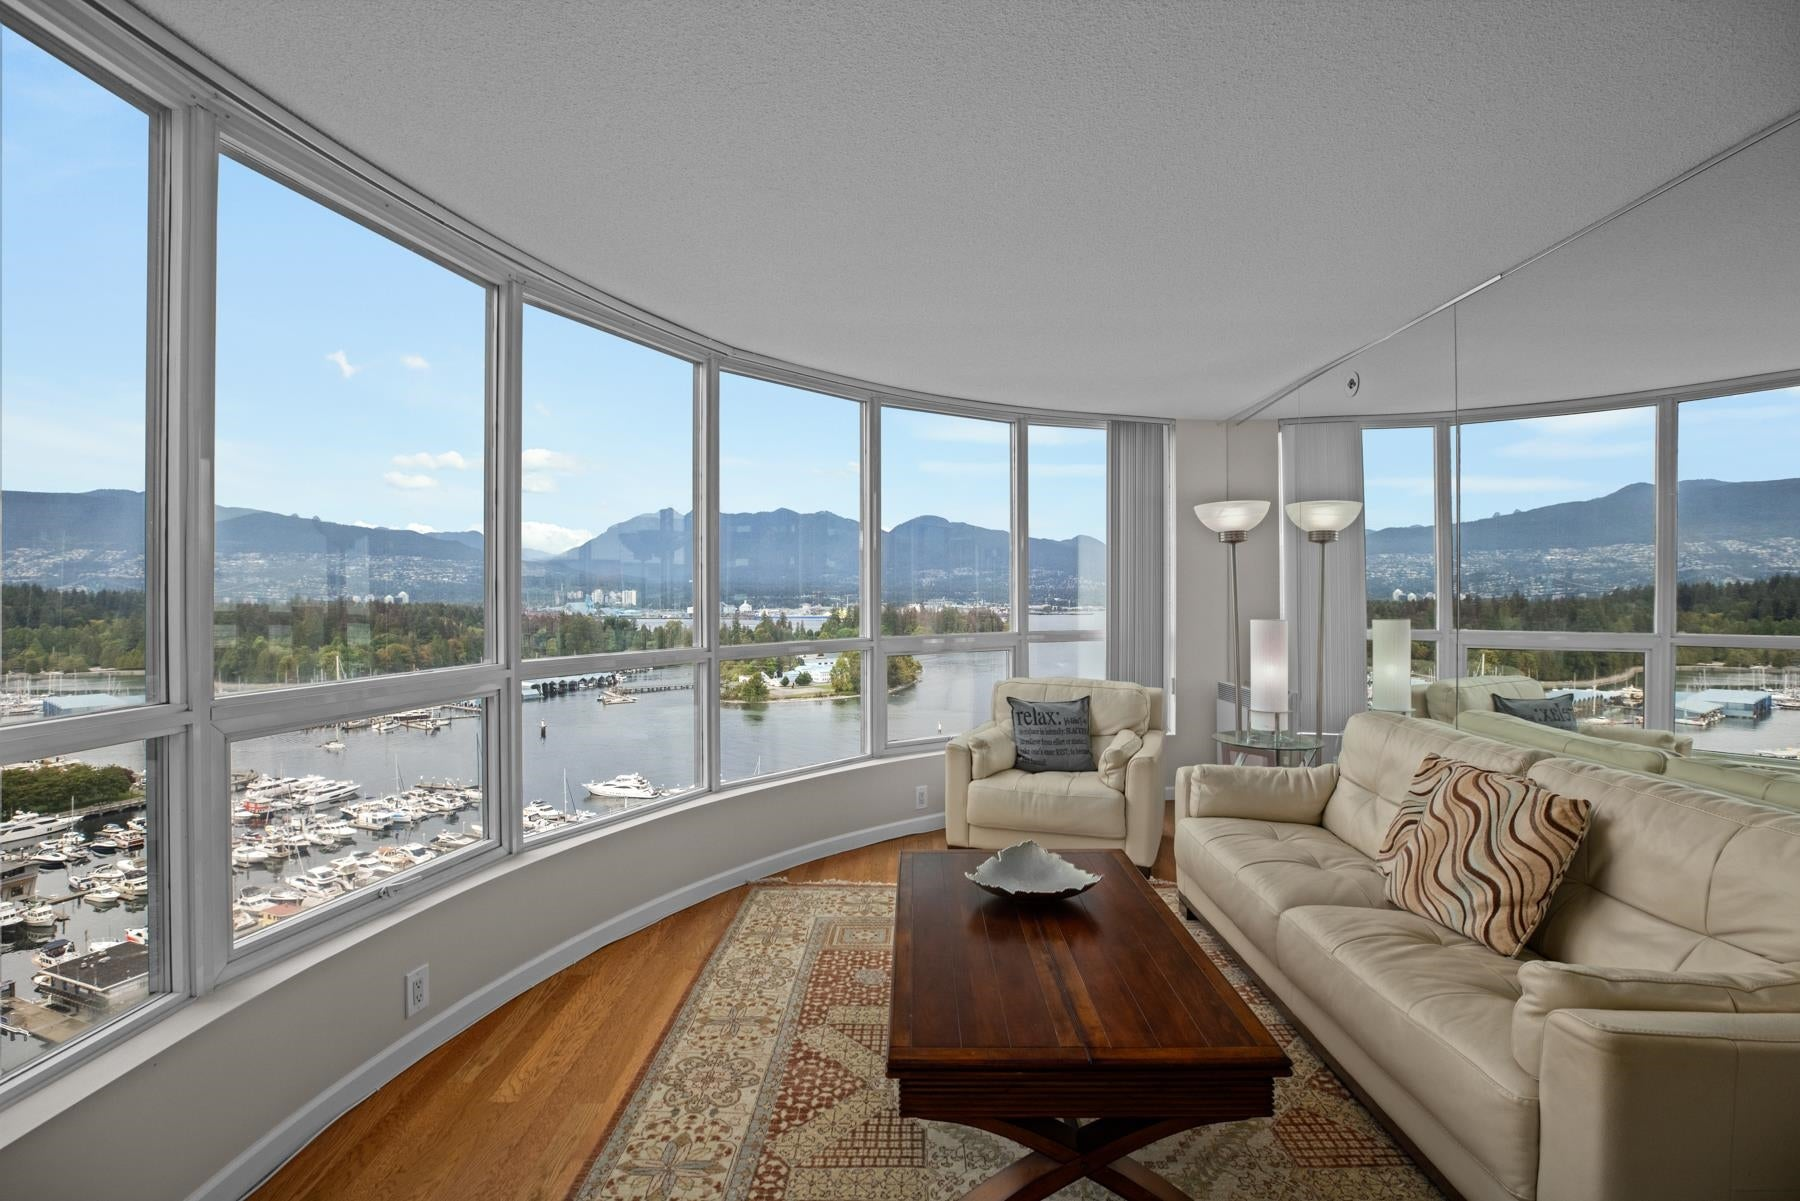 2201 555 JERVIS STREET - Coal Harbour Apartment/Condo for sale, 2 Bedrooms (R2615273) - #1